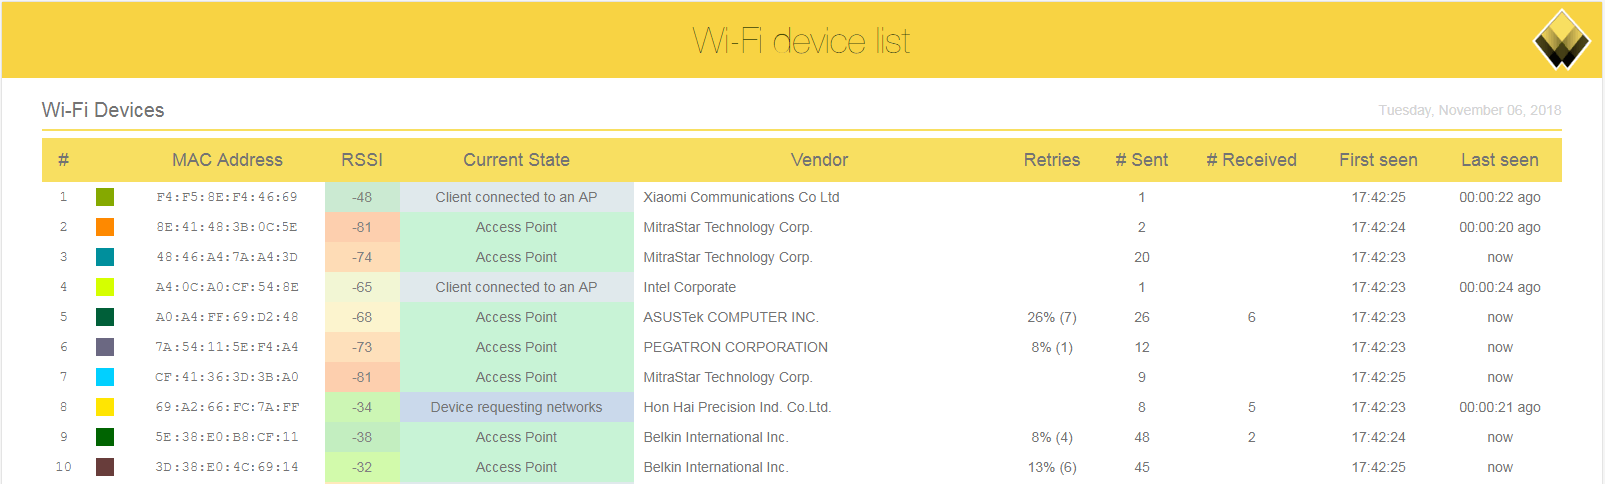 All wifi devices in a report